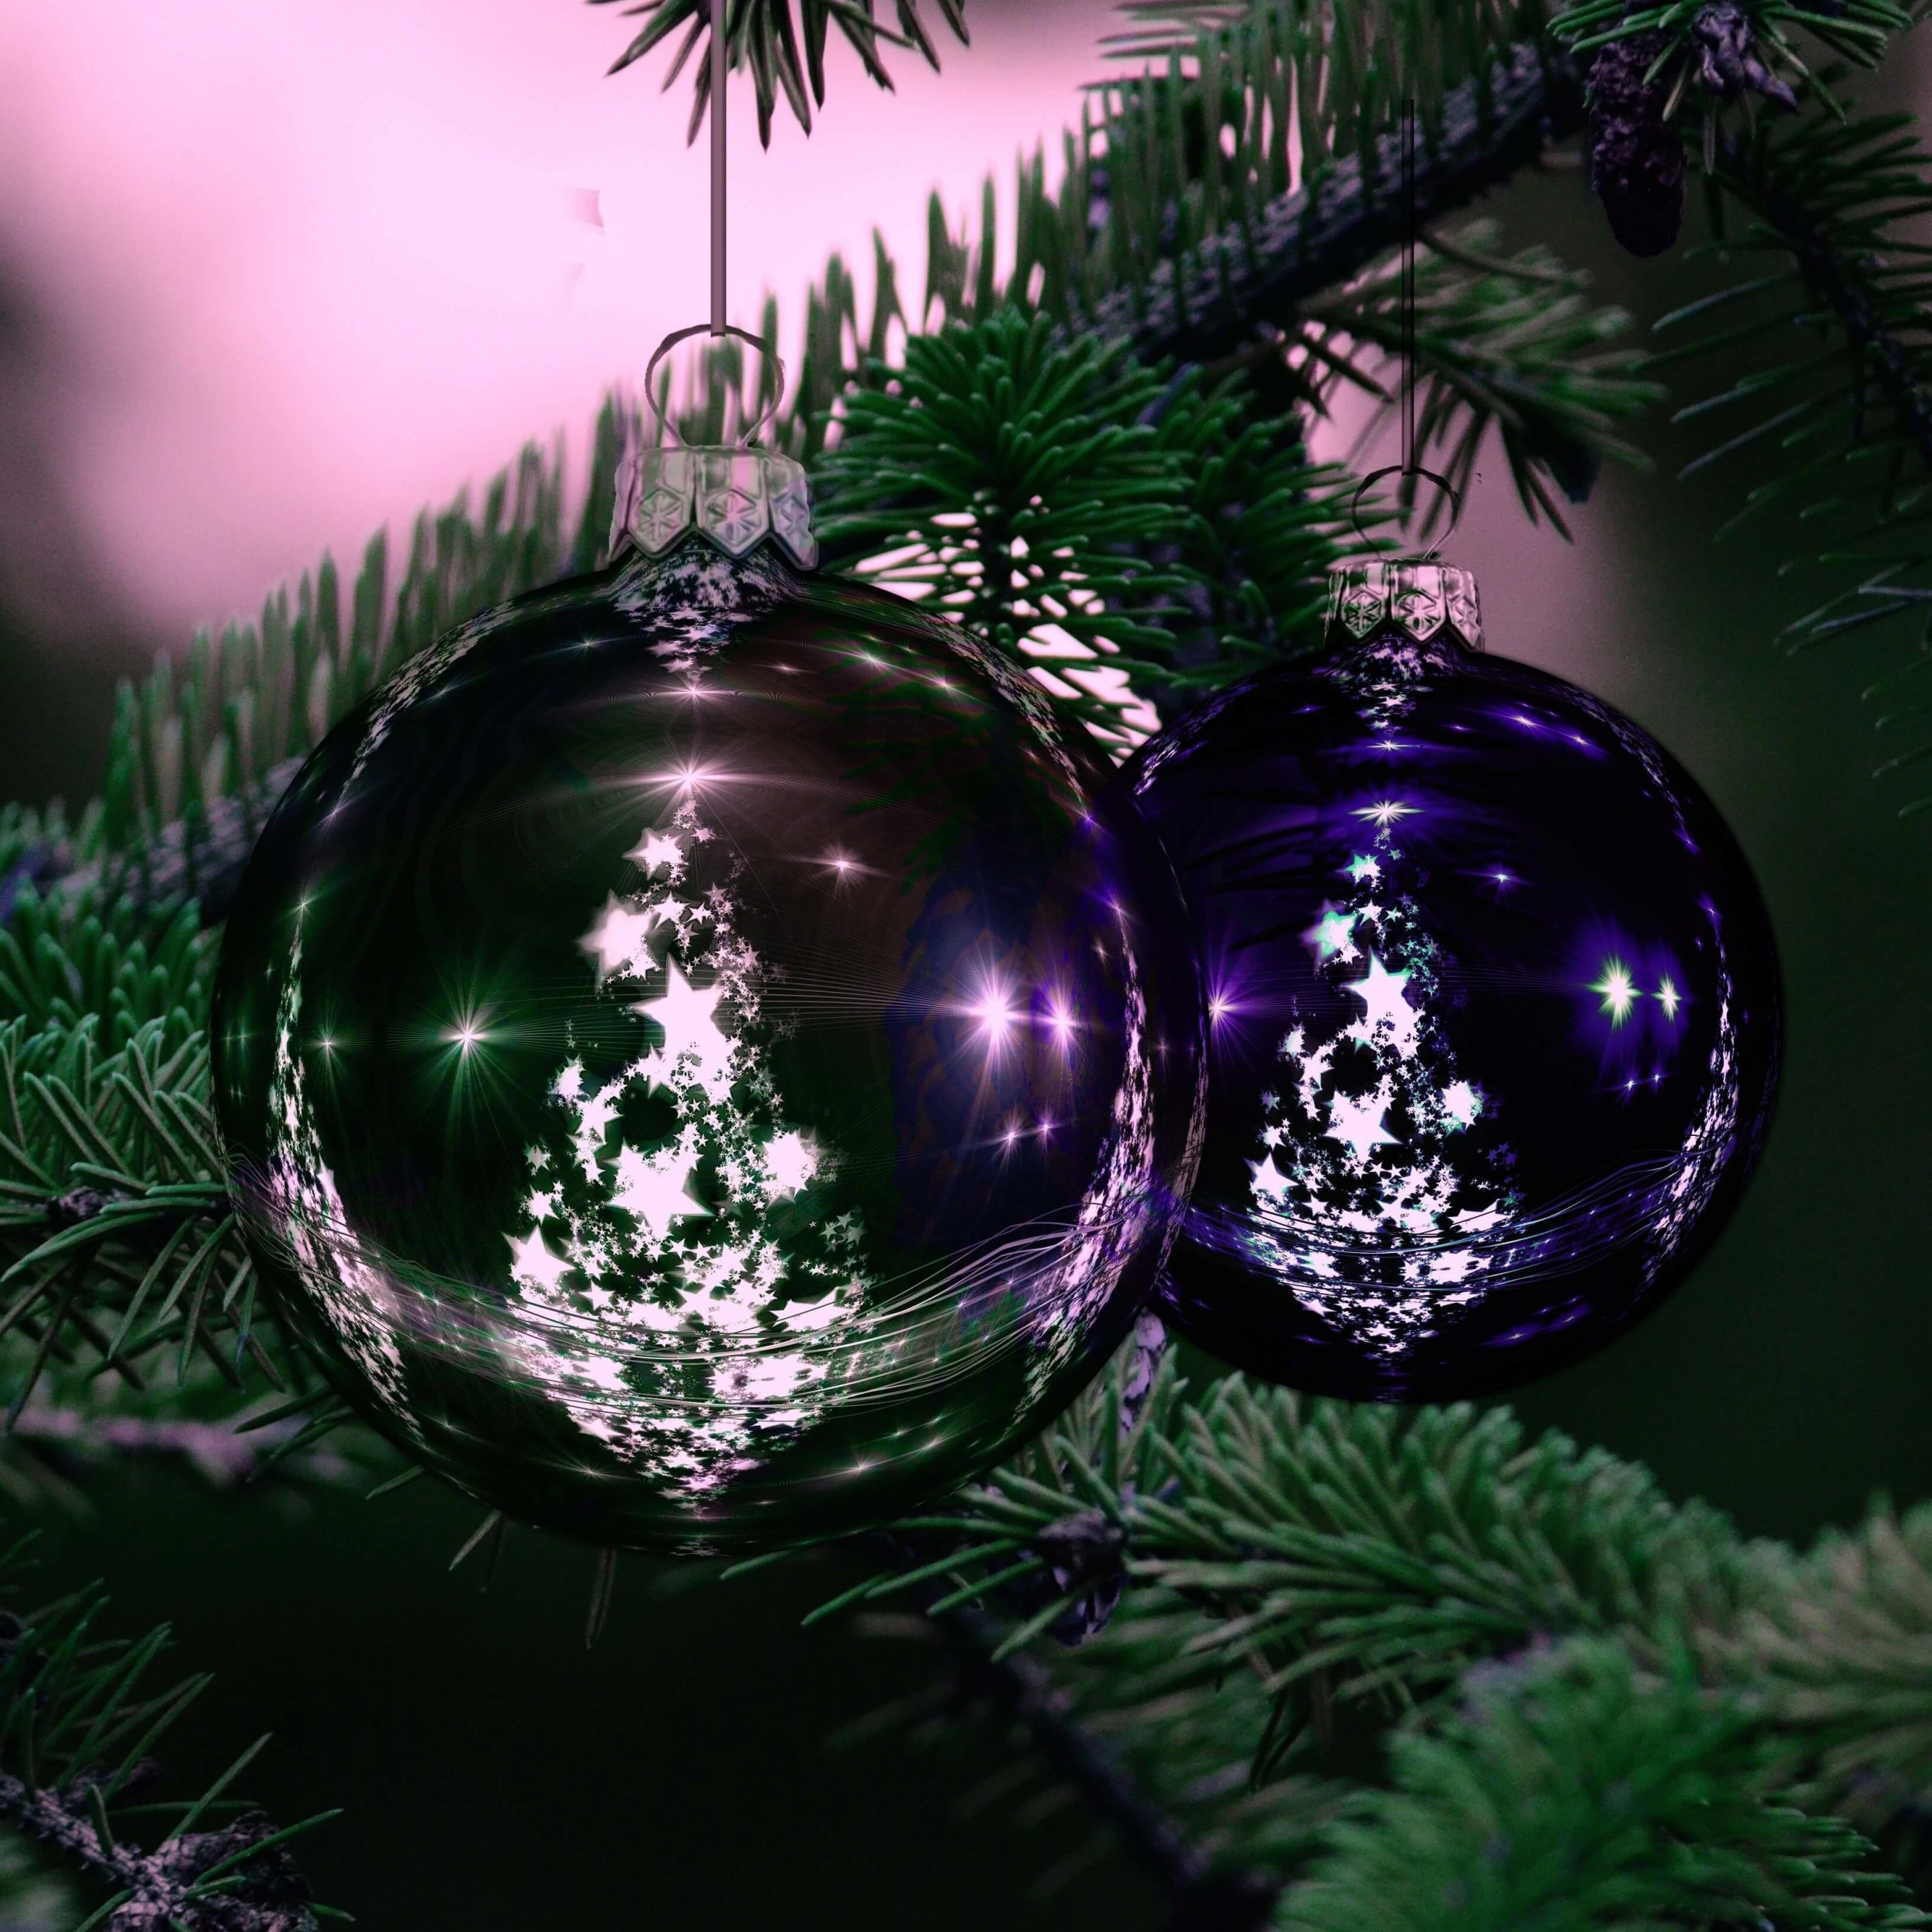 Beautiful Christmas Tree Ornaments Wallpaper for Apple iPad 3